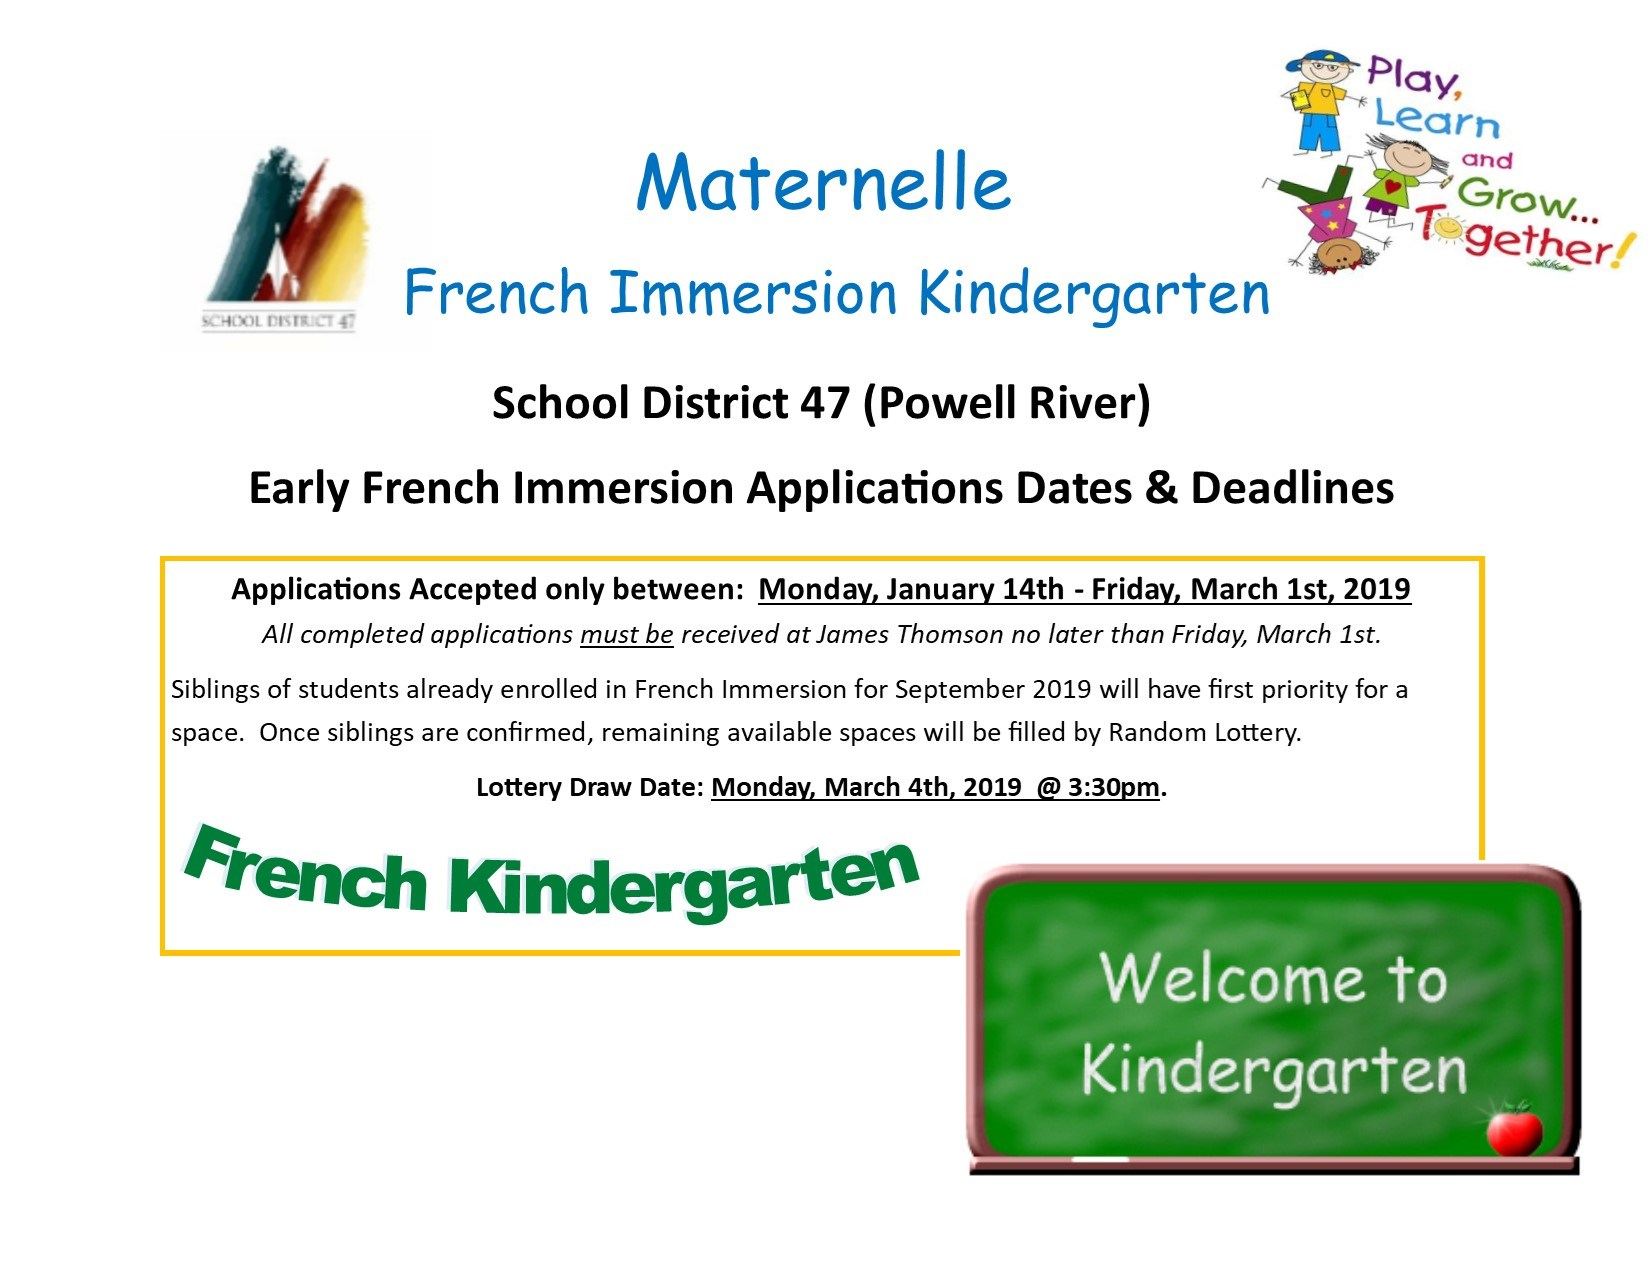 French Immersion Kindergarten Applications for Sept 2019 - Accepted Now through March 1st